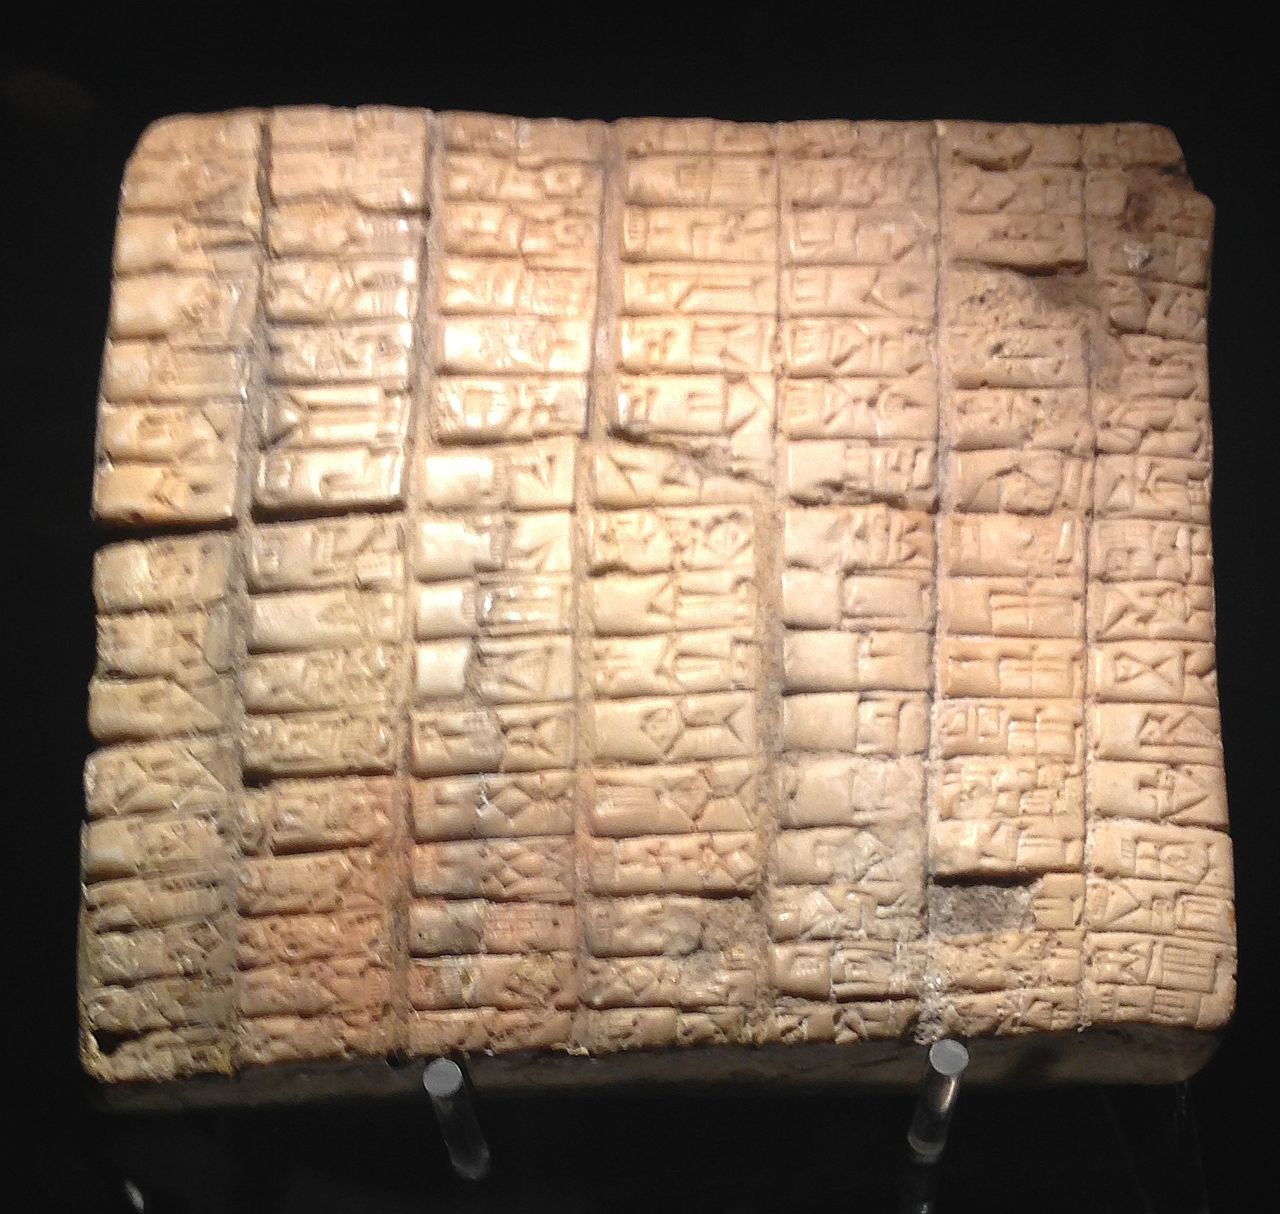 Ebla clay tabelt from the royal archive (Attribution Davide Mauro, 2017)